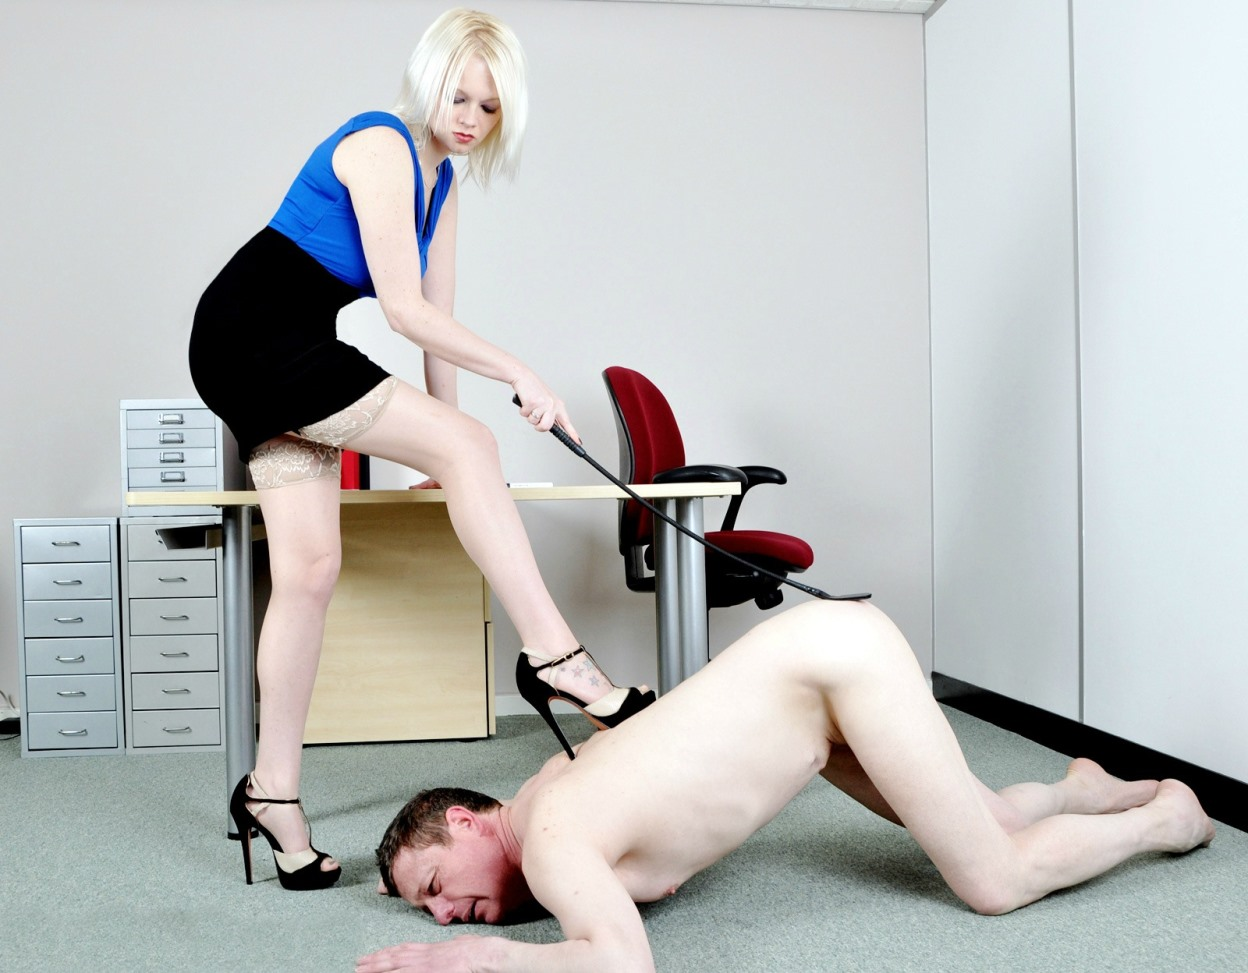 Boss Mistress Heather in Stockings and High Heels Spanking Punish Nude Slave In Office